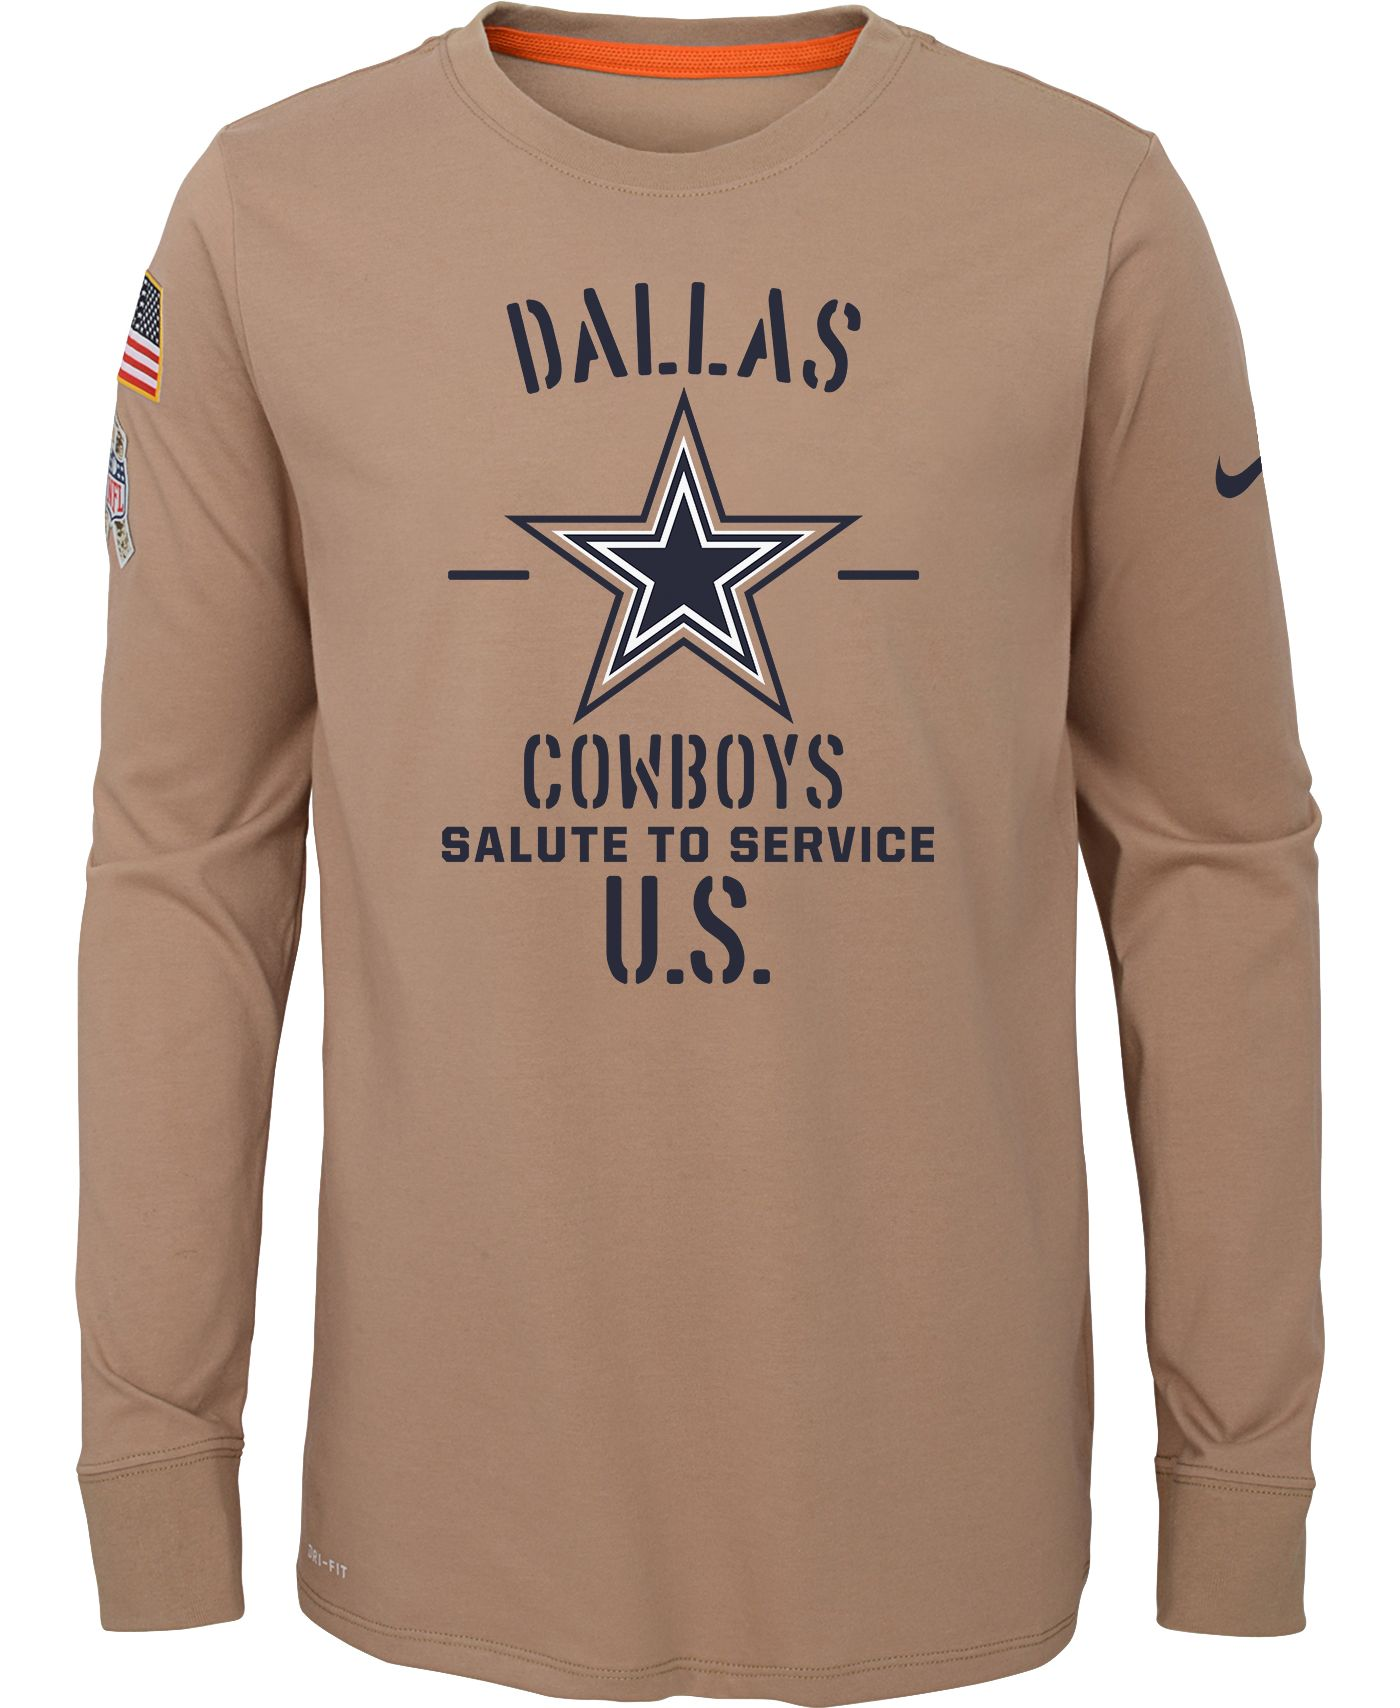 Nike Youth Salute to Service Dallas Cowboys Dri-FIT Beige Long Sleeve Shirt